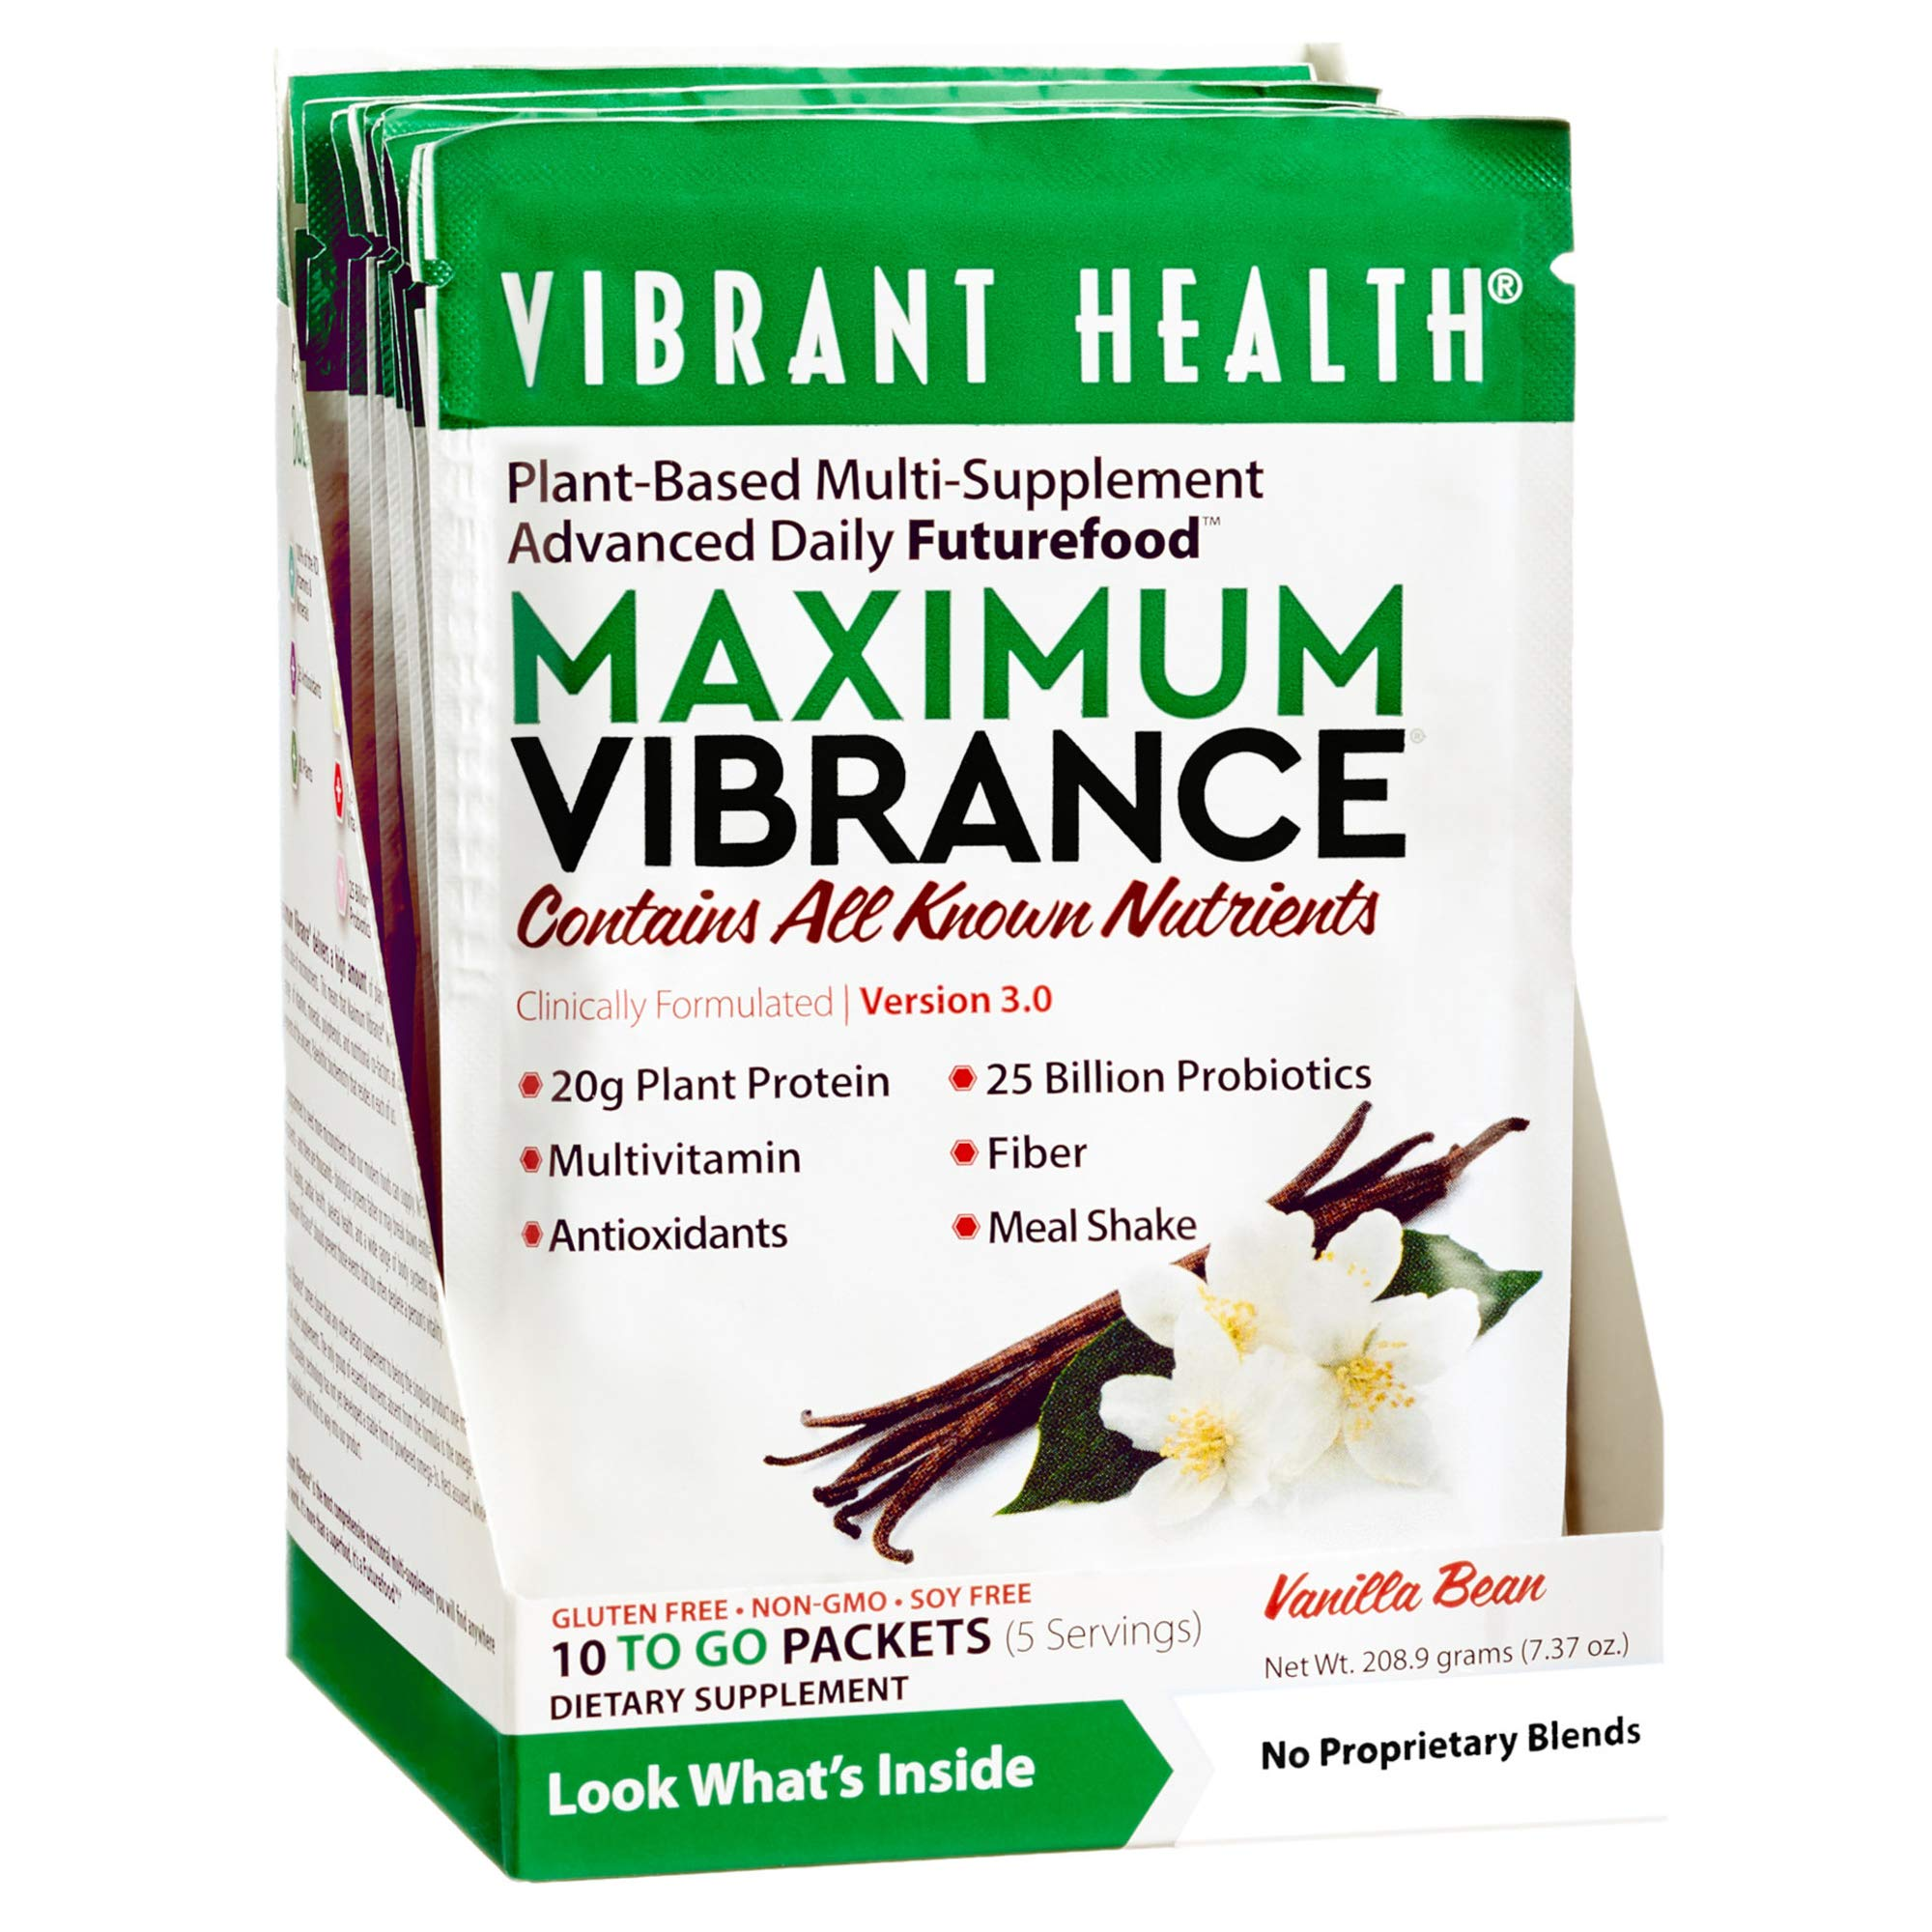 Vibrant Health - Maximum Vibrance, All in One Multi-Supplement Advanced Daily Futurefood, 10 Packets (FFP)